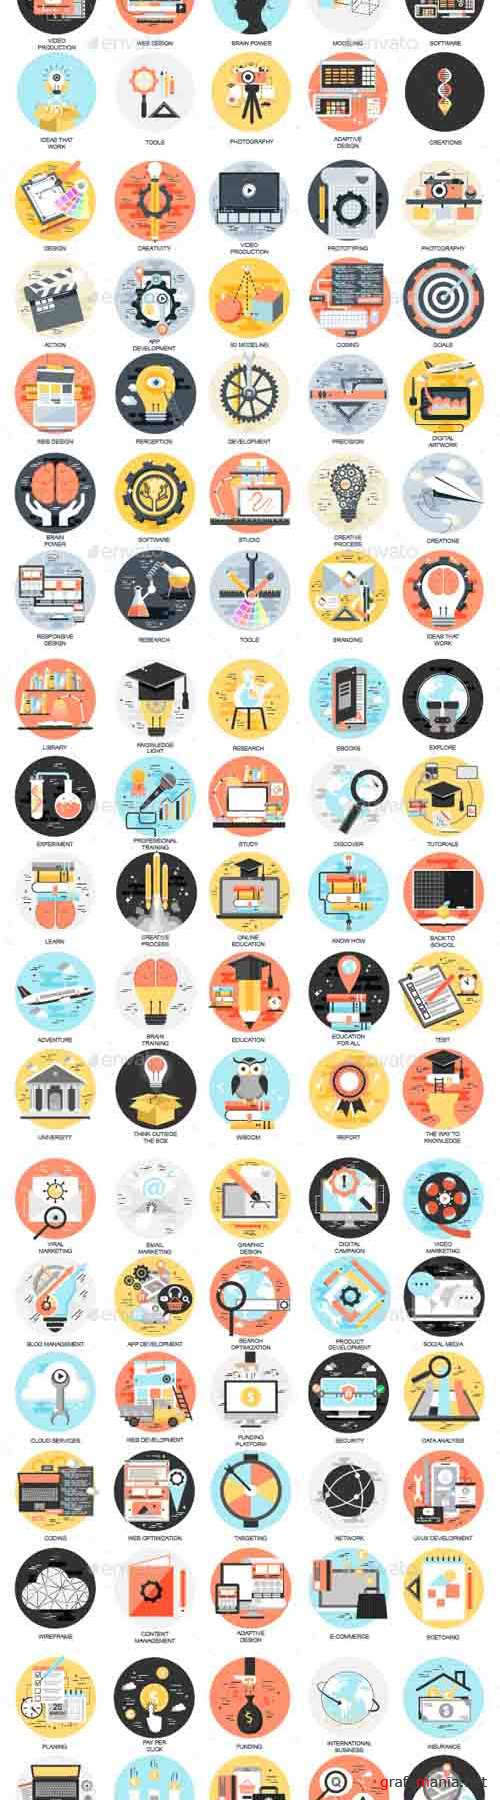 Set of Flat Design Concept Business Icons 18337040